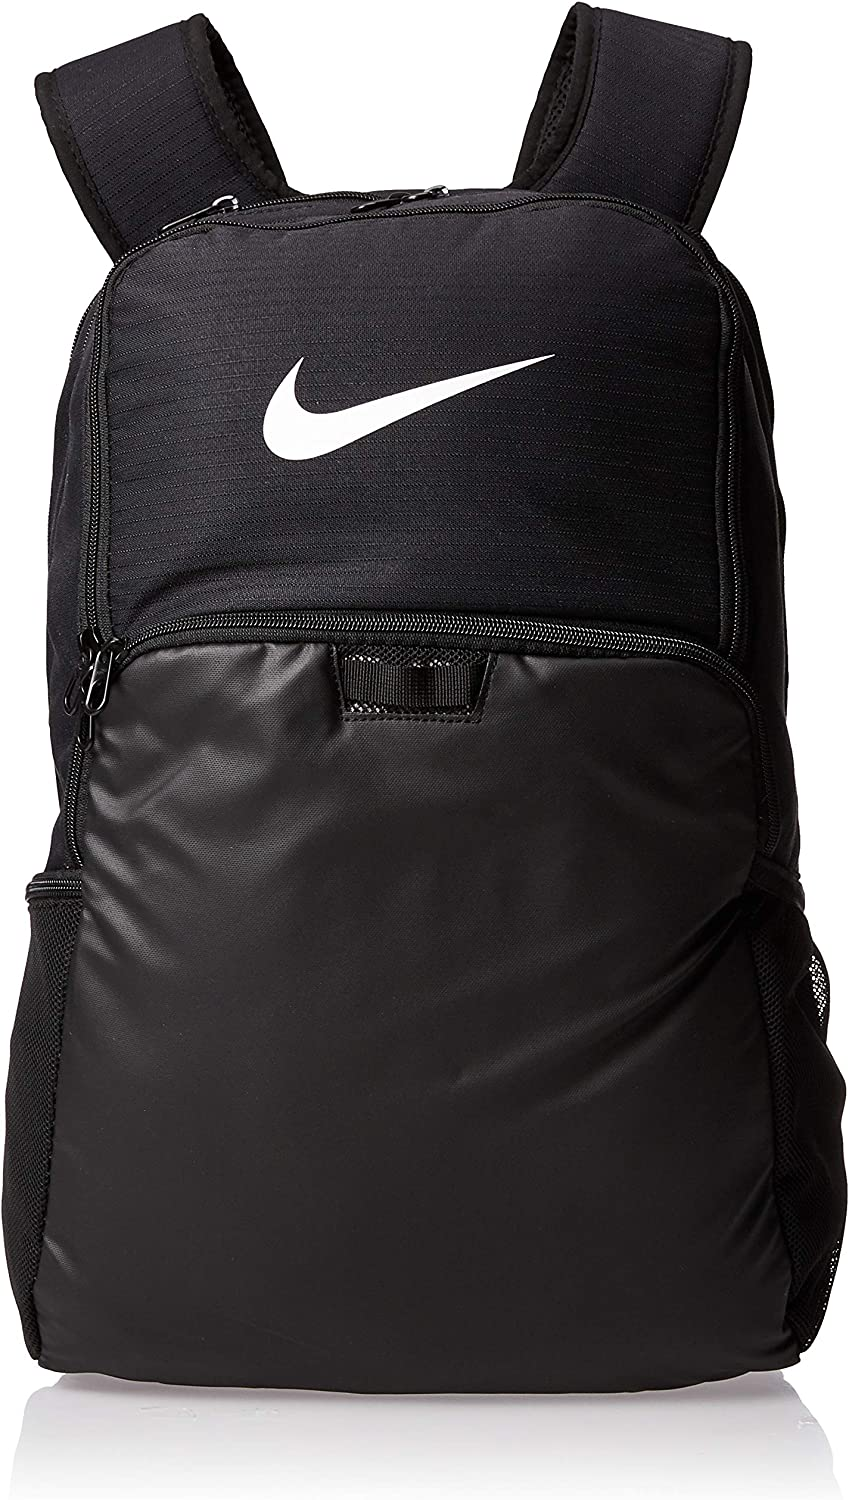 Nike unisex-adult Nike Brasilia X-large Backpack - 9.0